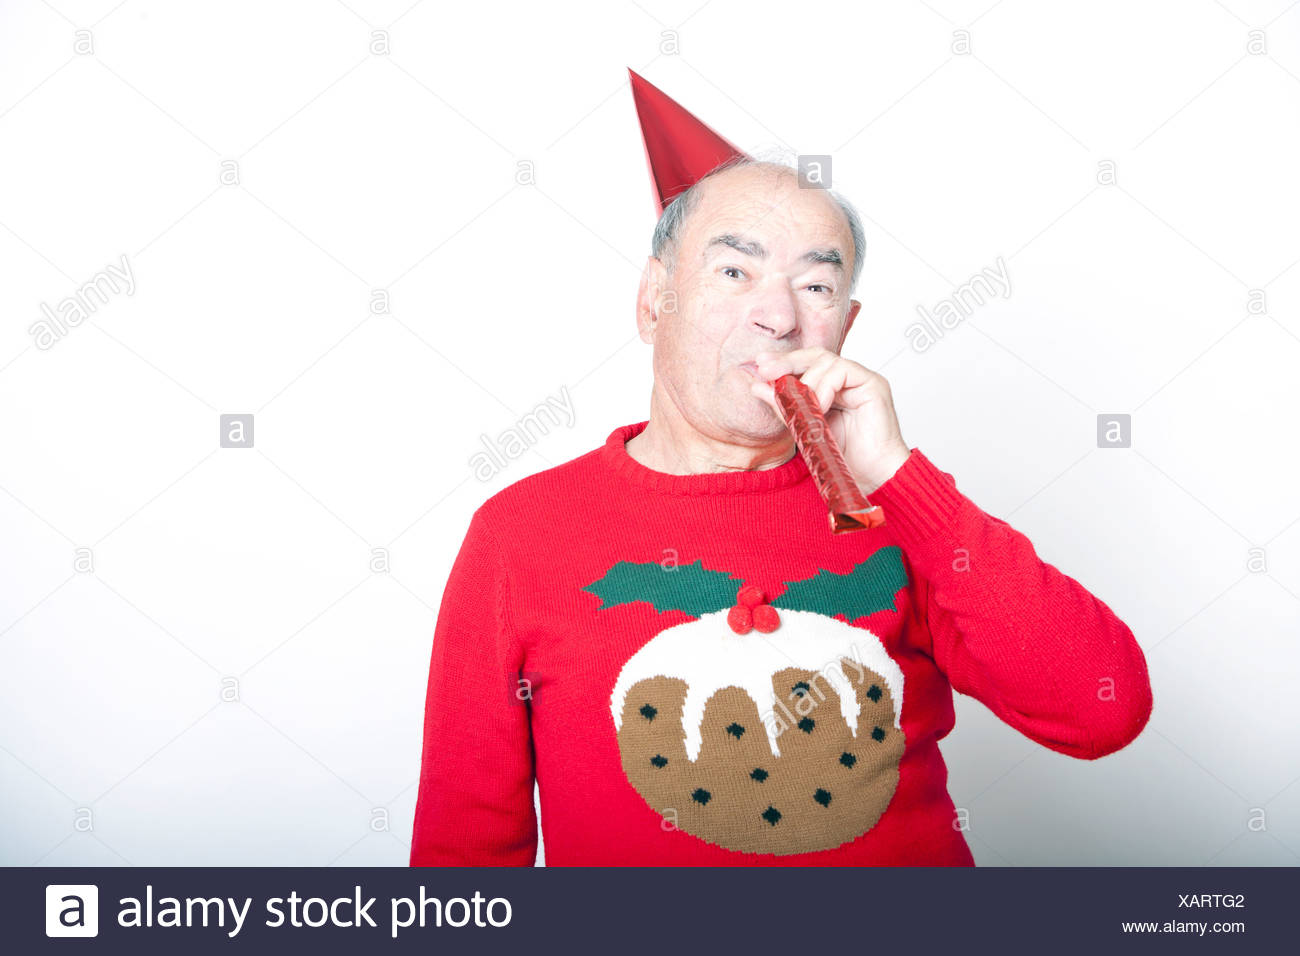 Senior adult man wearing Christmas jumper blowing party blower - Stock Image